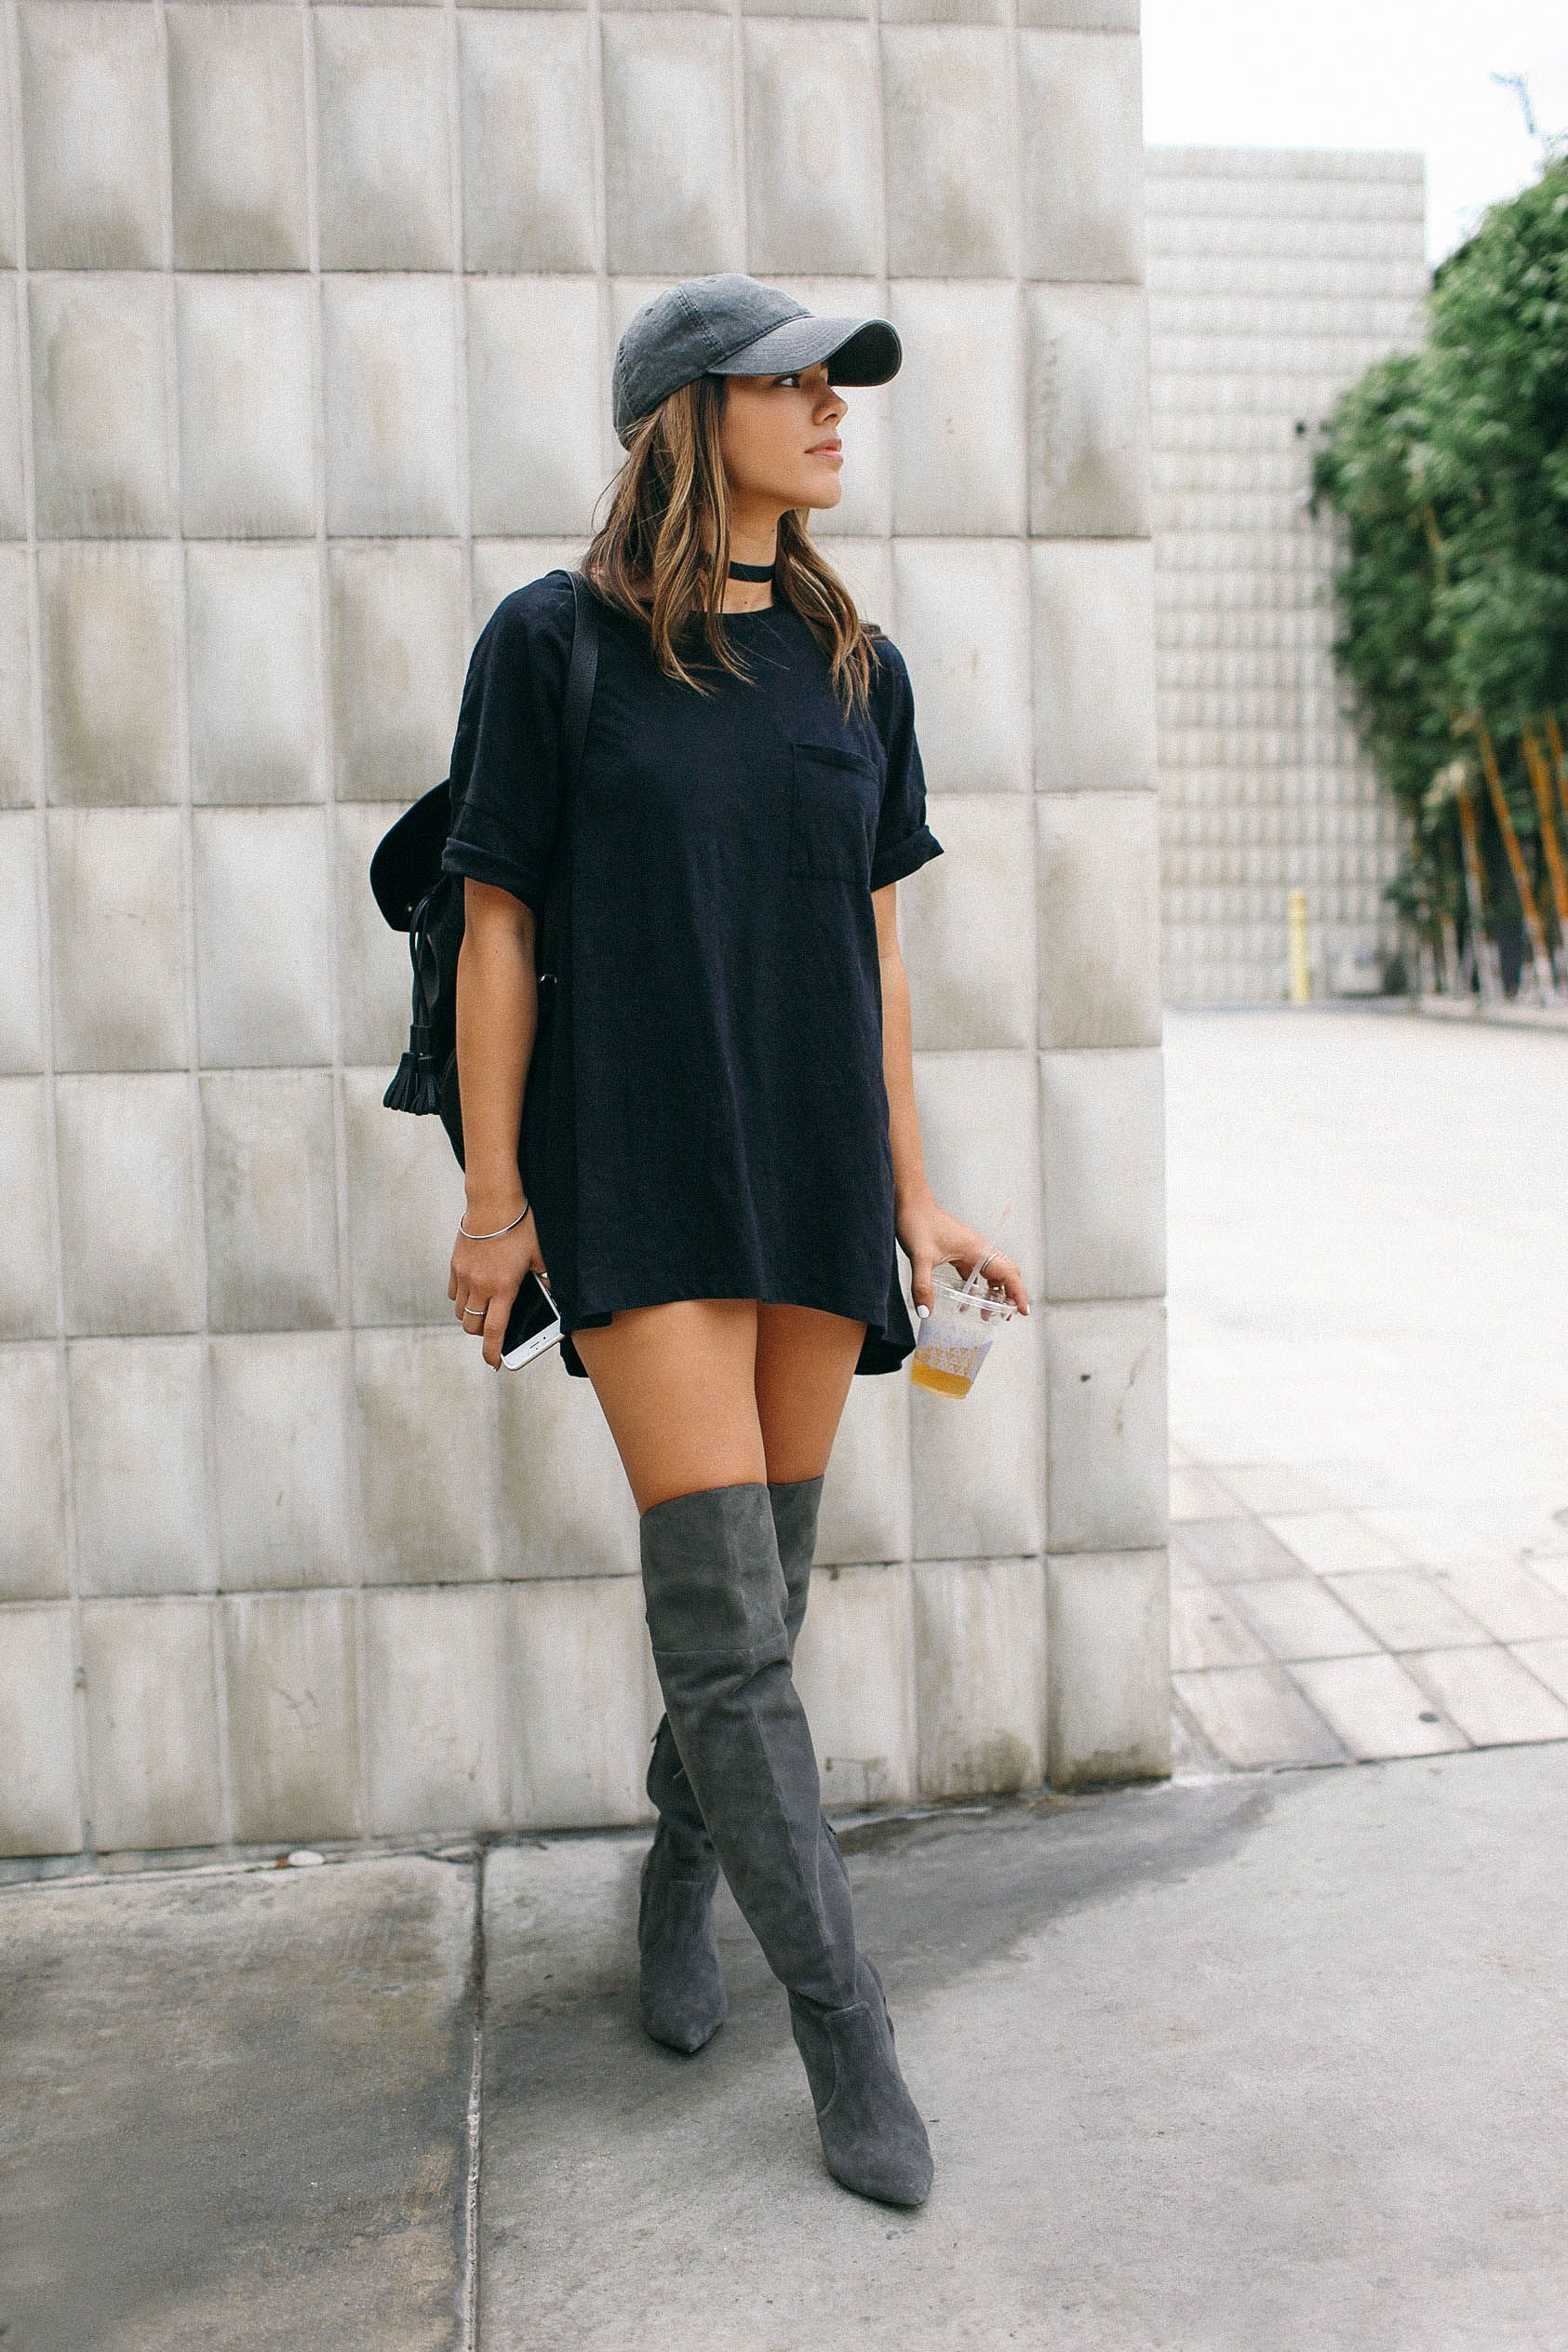 Dress black outfits tumblr recommendations to wear for spring in 2019